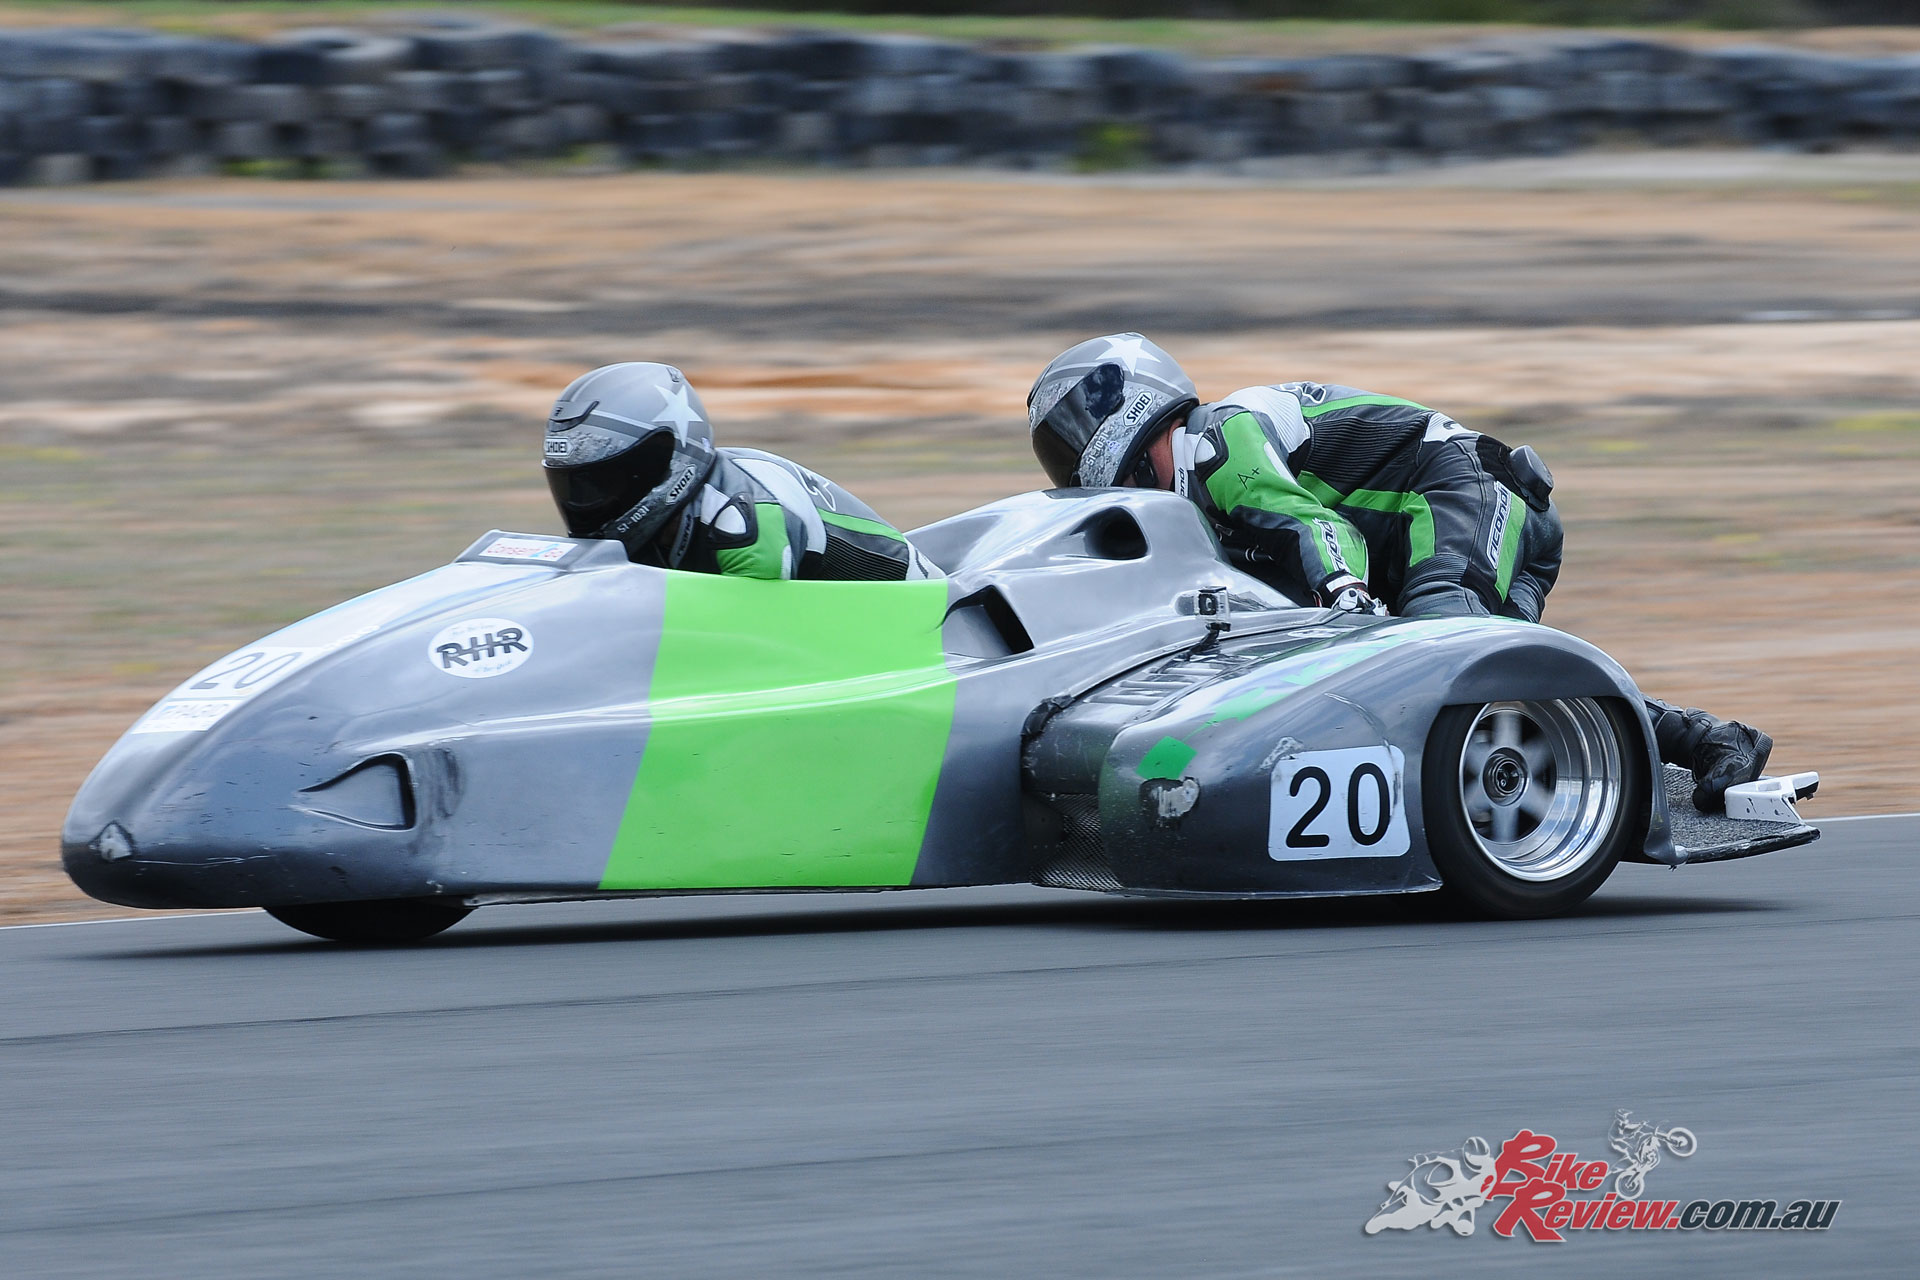 Graeme Evans & Jarrod Scott in the Sidecars claimed the title - WA State RR Championship - Round 4, 2018